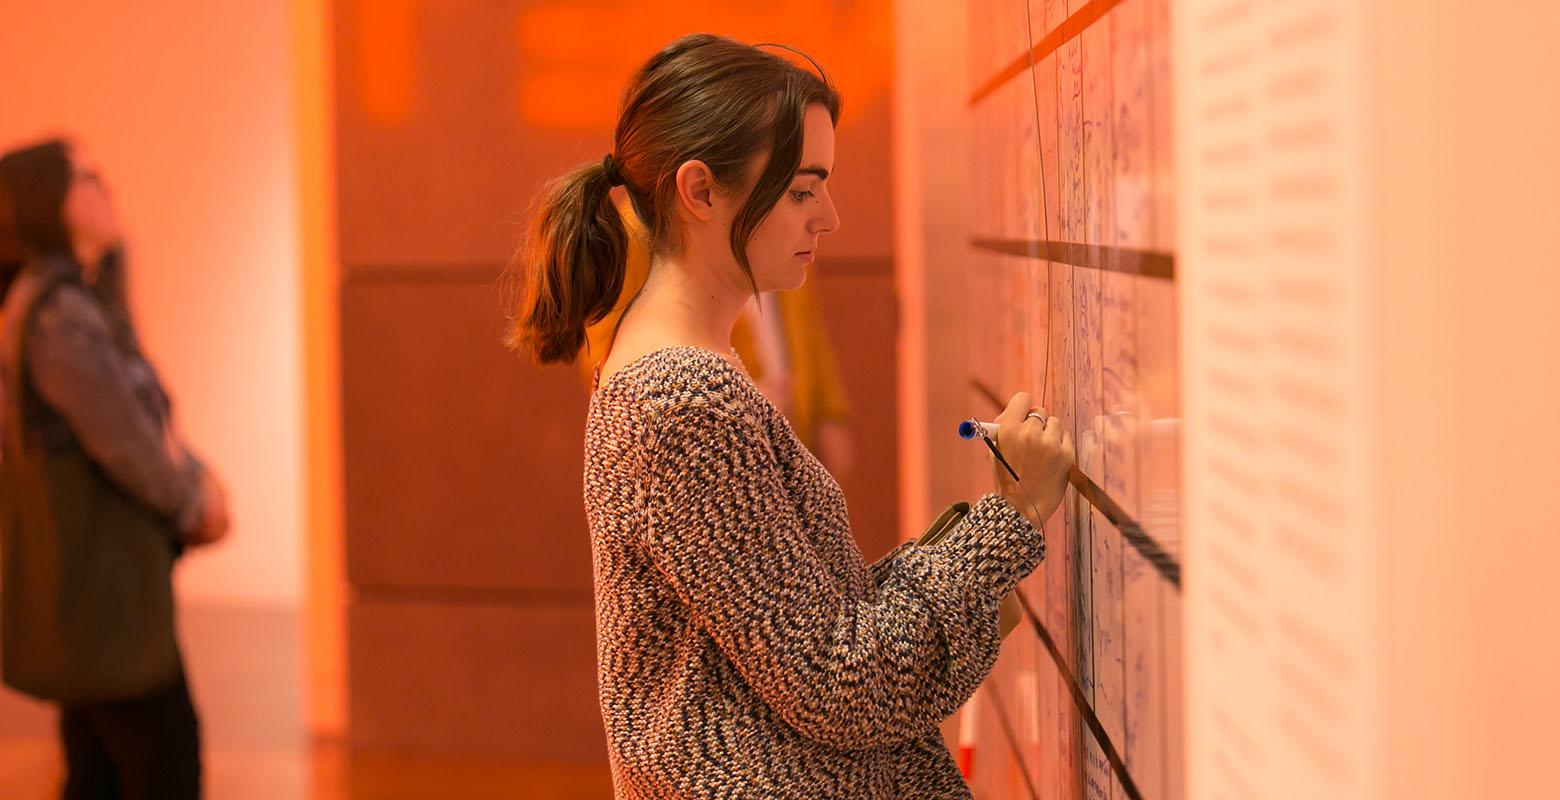 A young woman writes on a wall that resembles white bricks